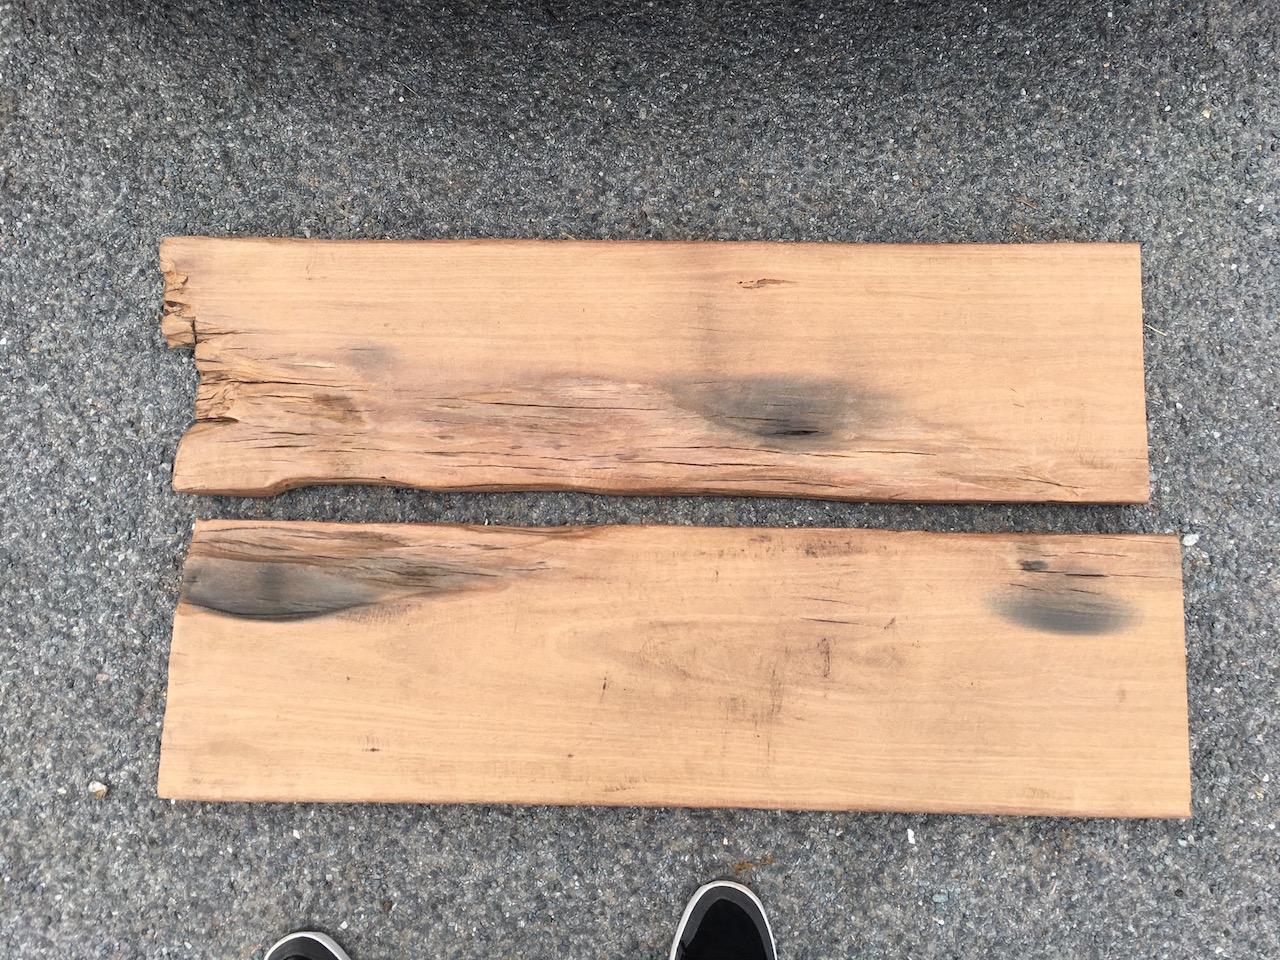 Diy hardwood coffee table made out of recycled wood part